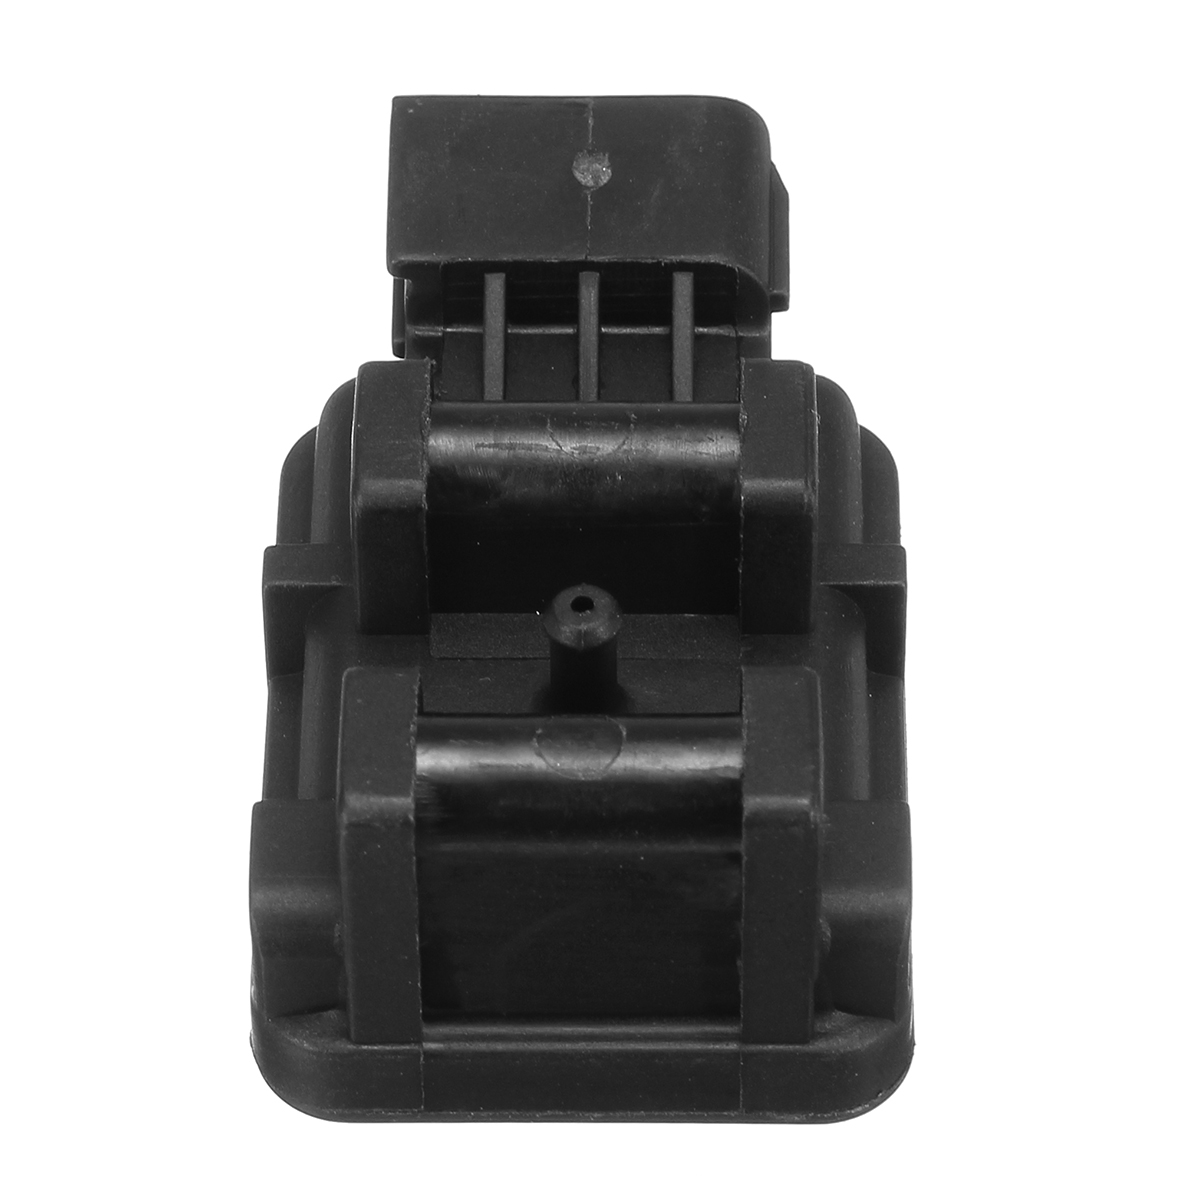 56029405 Manifold Absolute Black Pressure MAP Sensor for JEEP DODGE 97-03